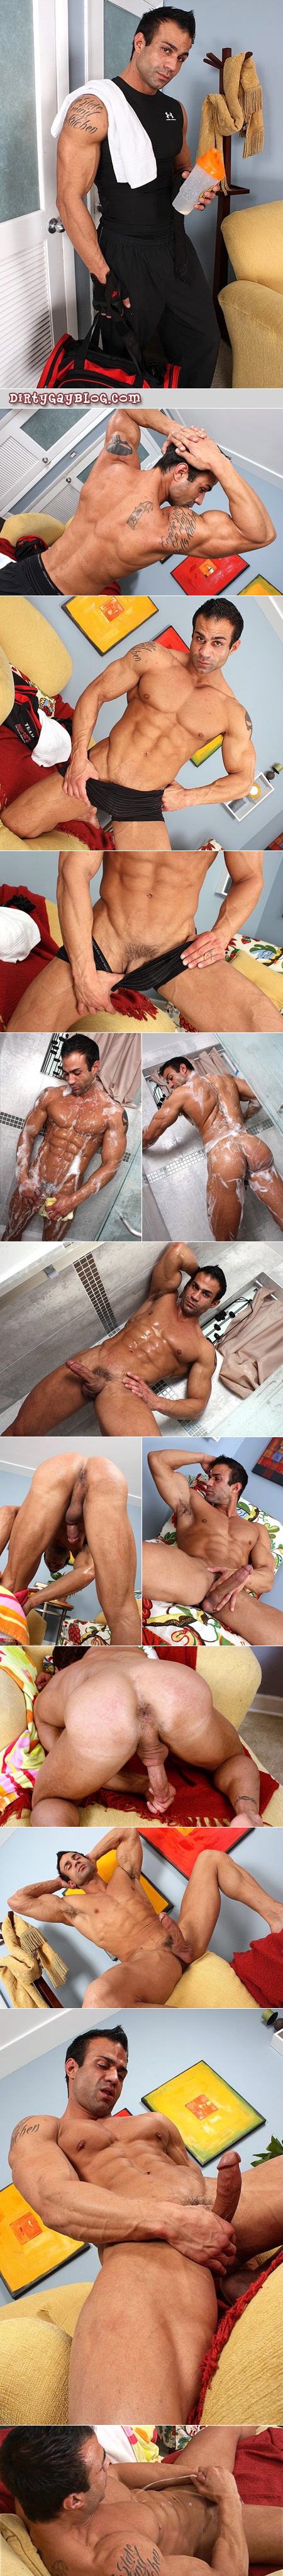 Hot Italian muscle man overdoes his manscaping but makes up for it in sex appeal and cum.